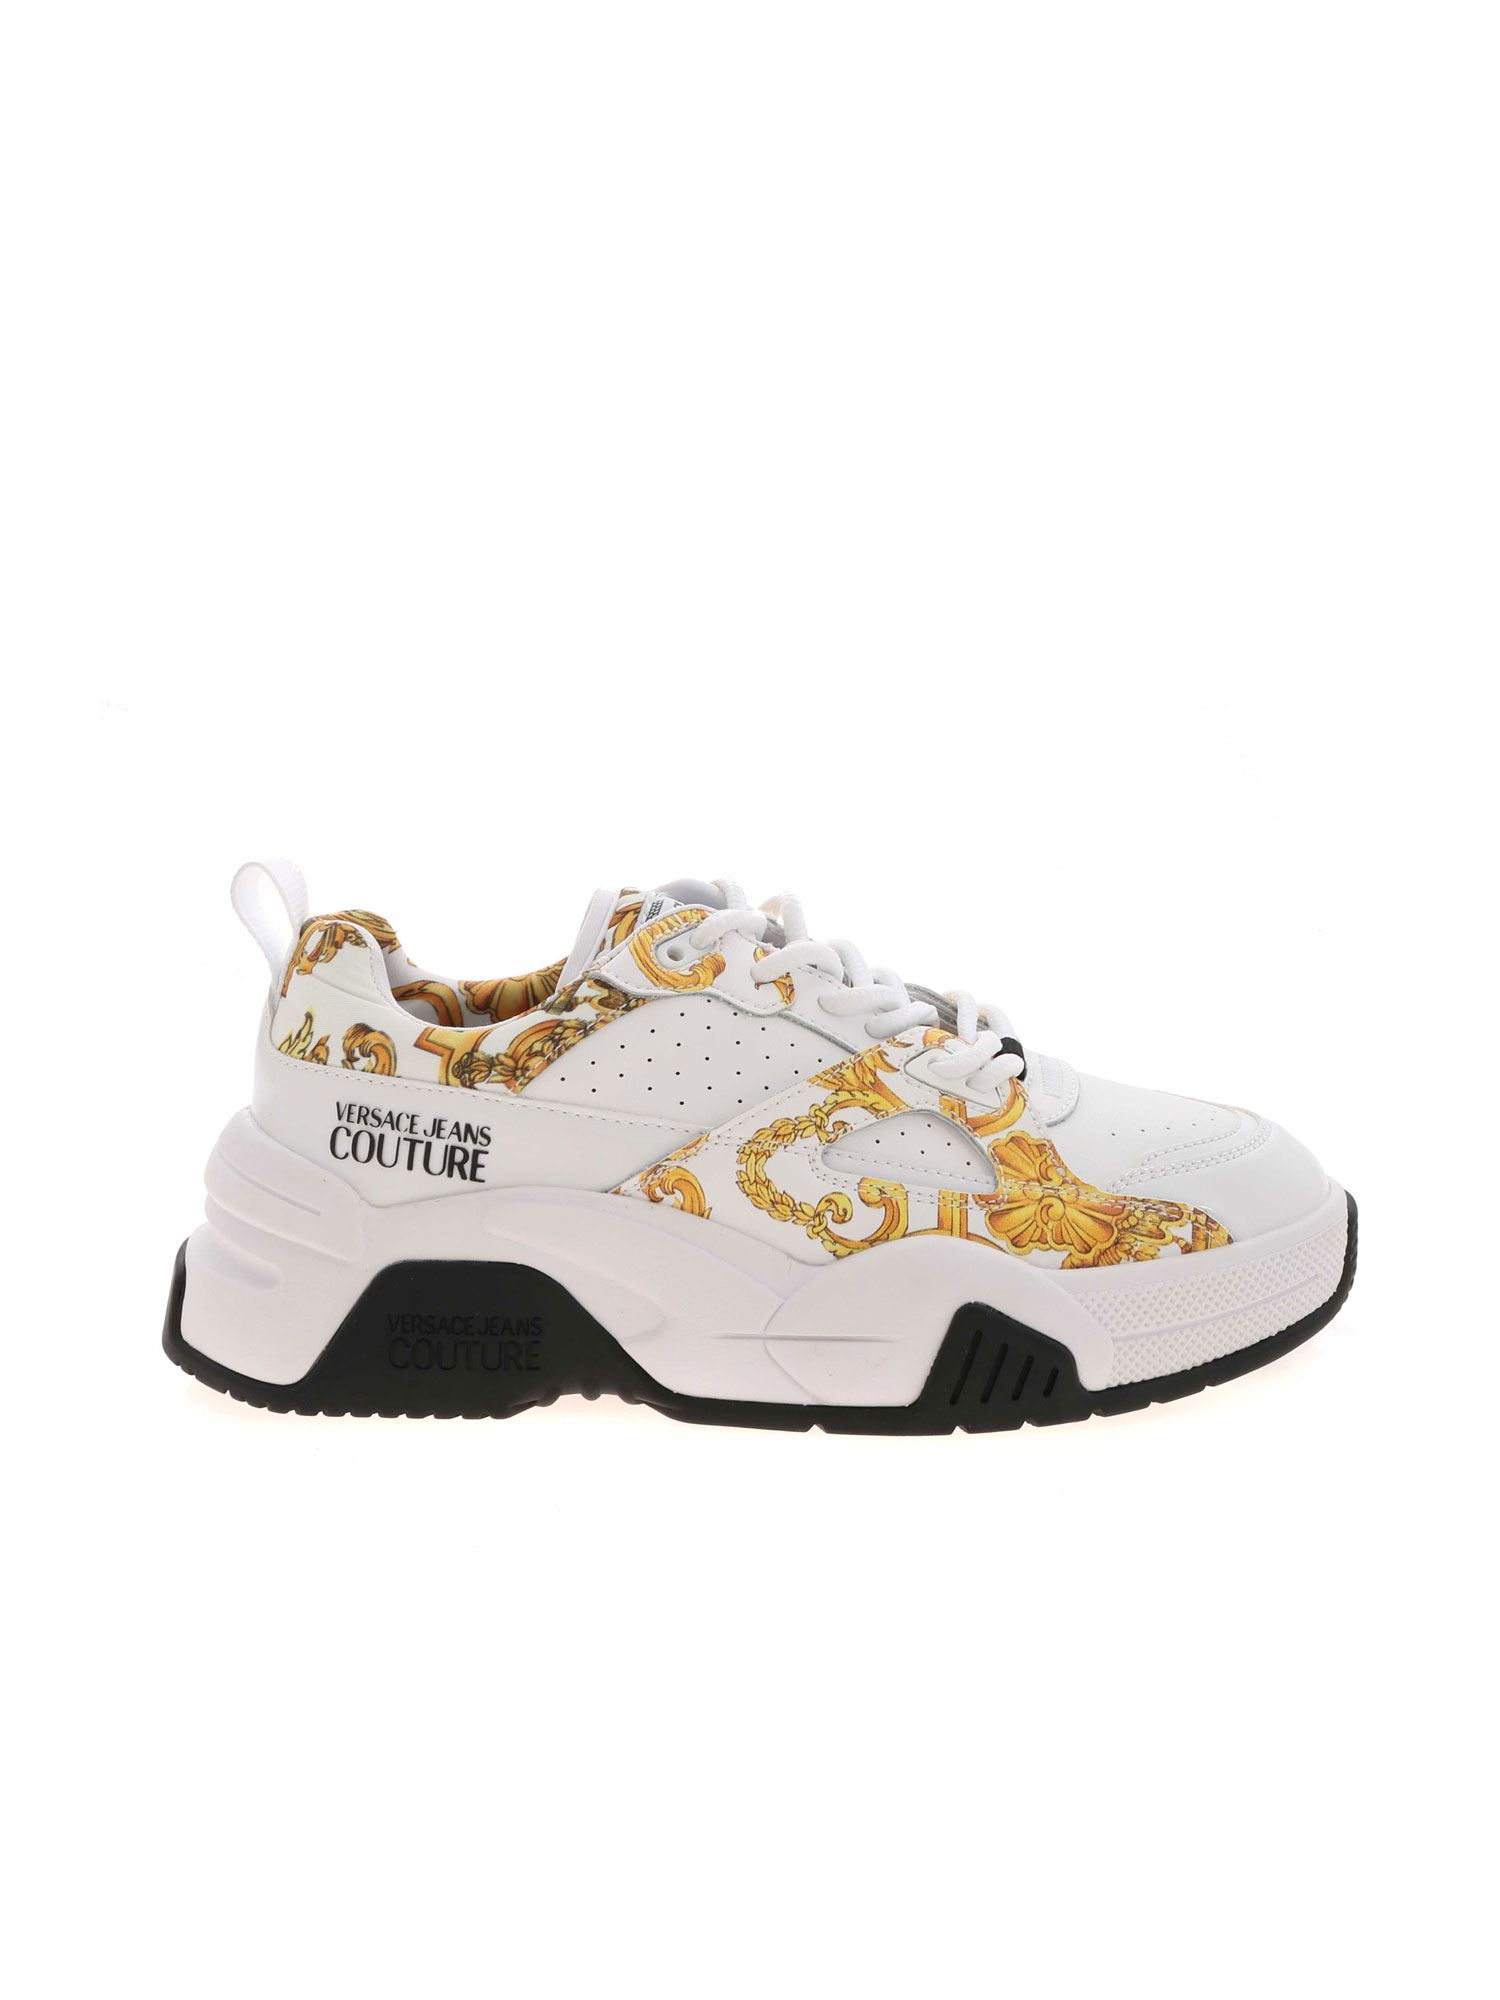 Versace Jeans Couture VERSAILLES PRINT SNEAKERS IN WHITE